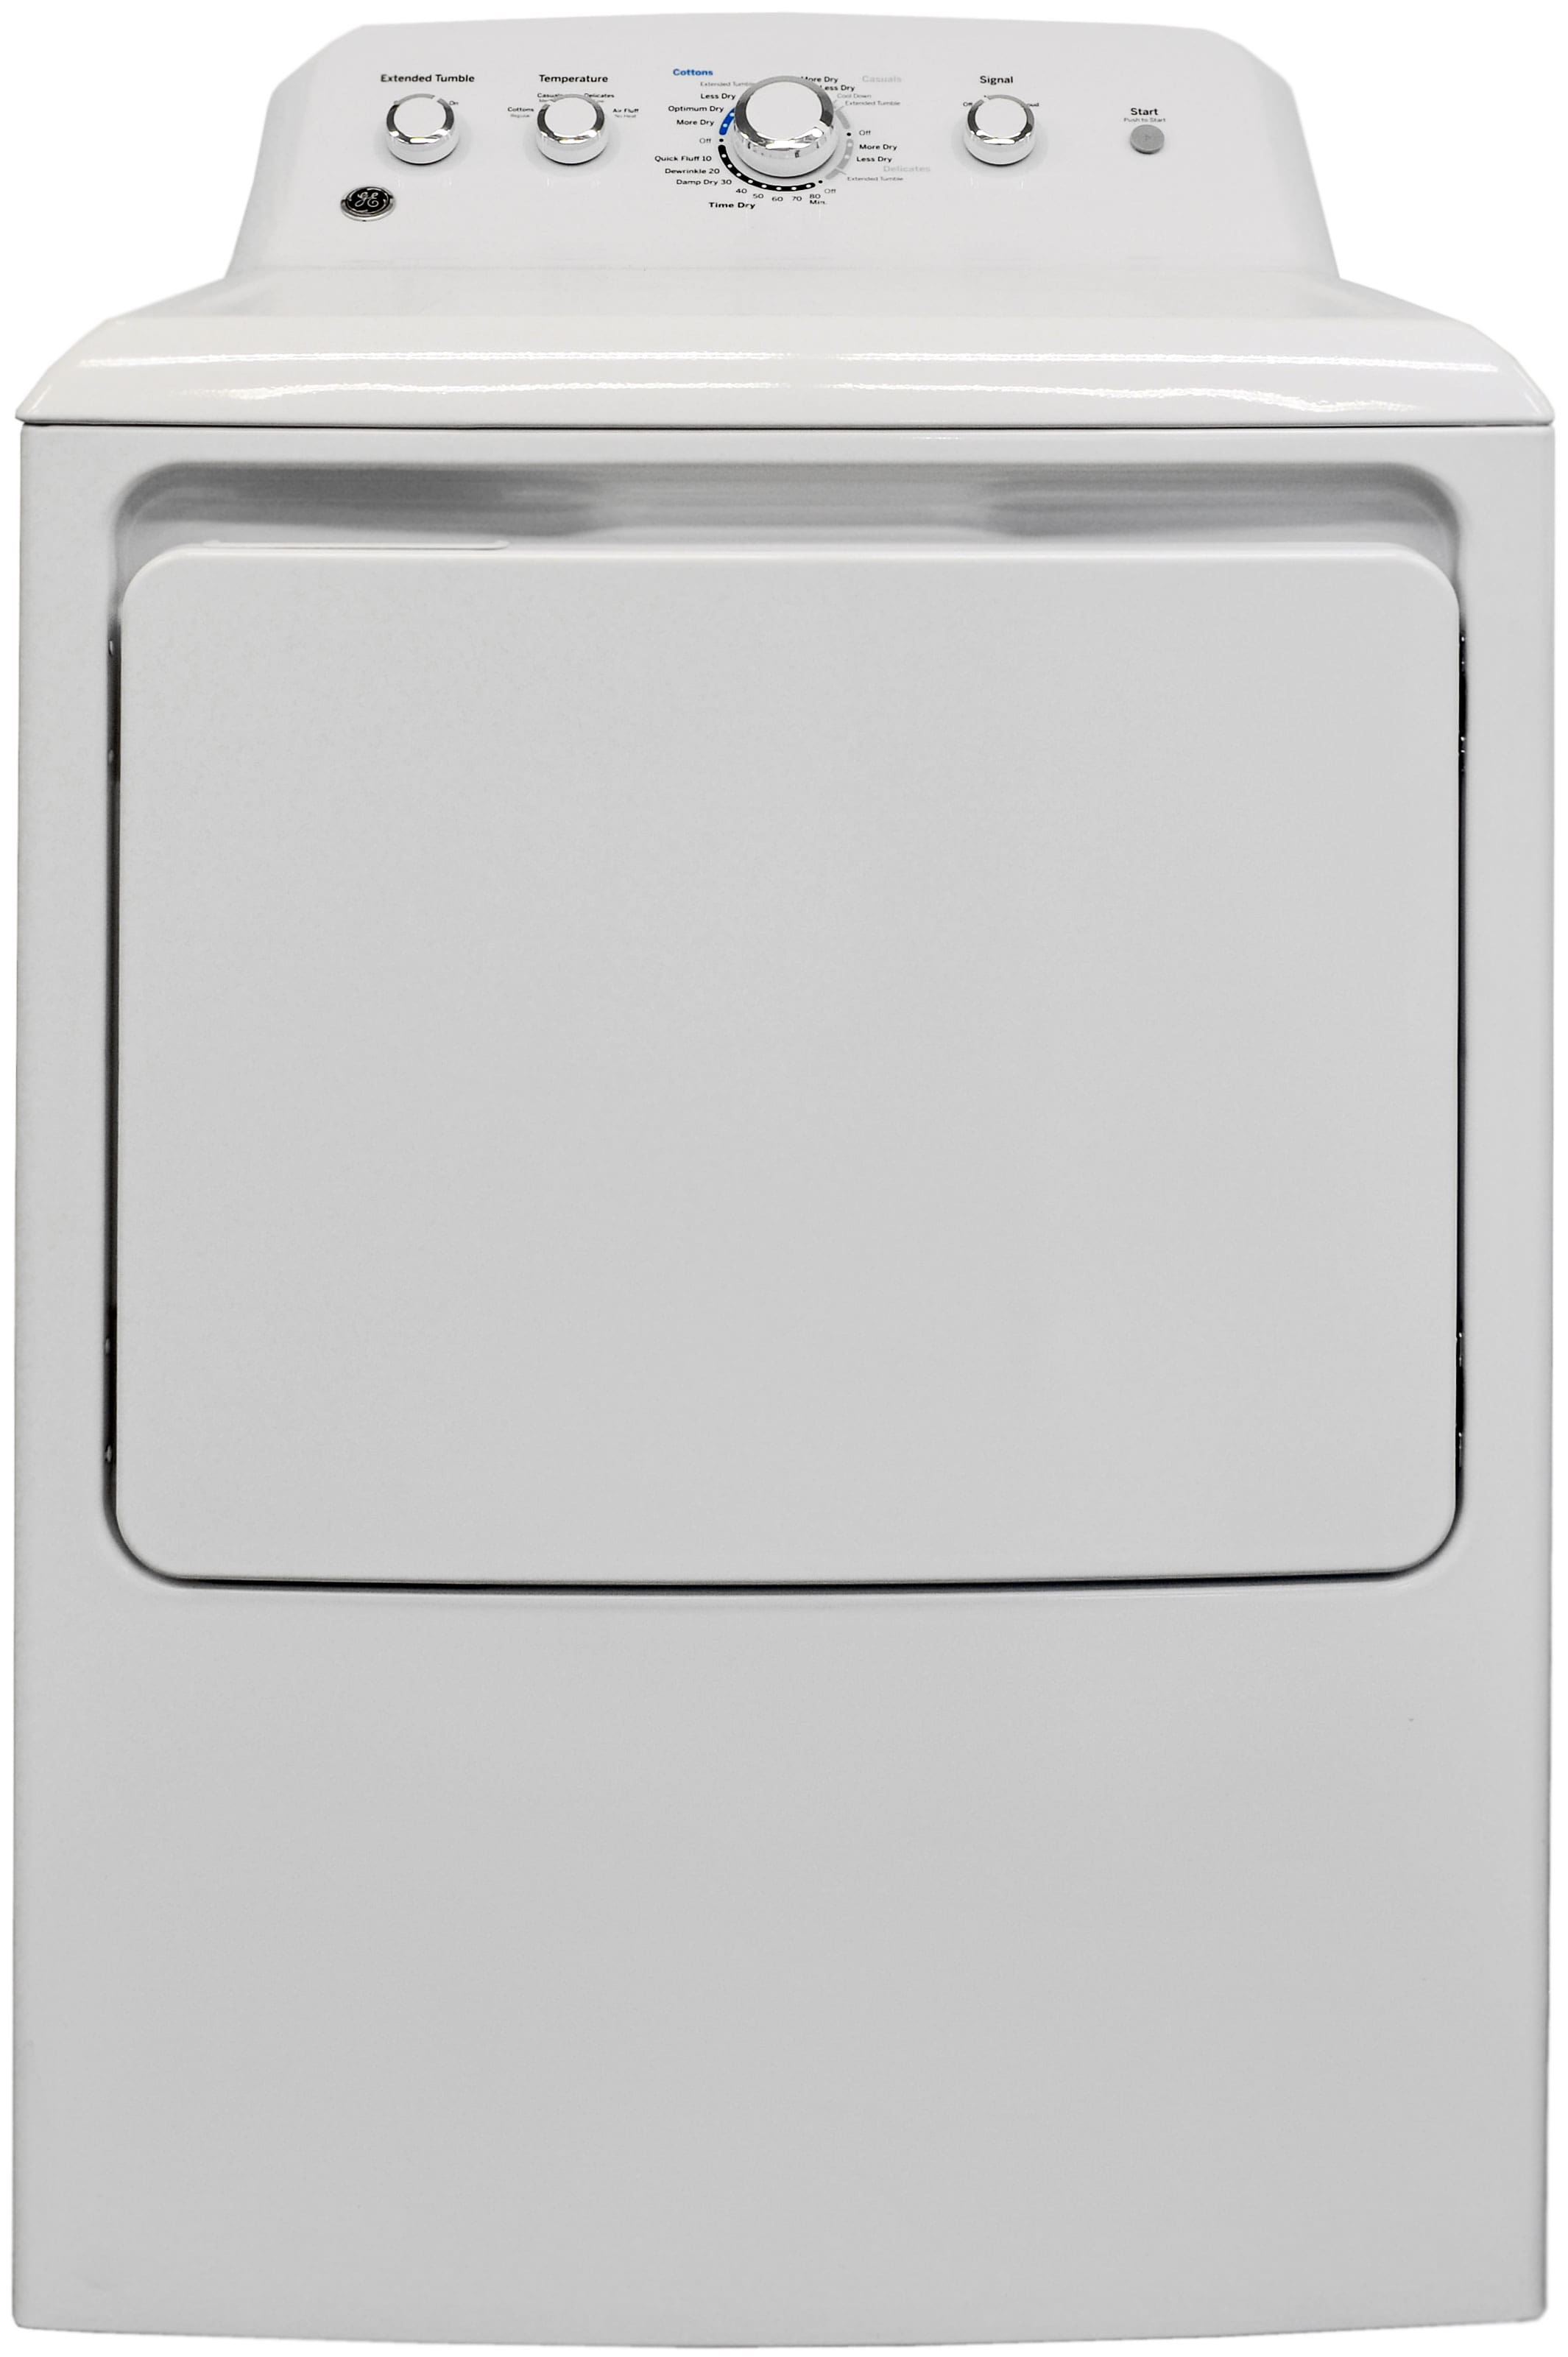 The simple GE GTD42EASJWW is one of the best budget dryers around.